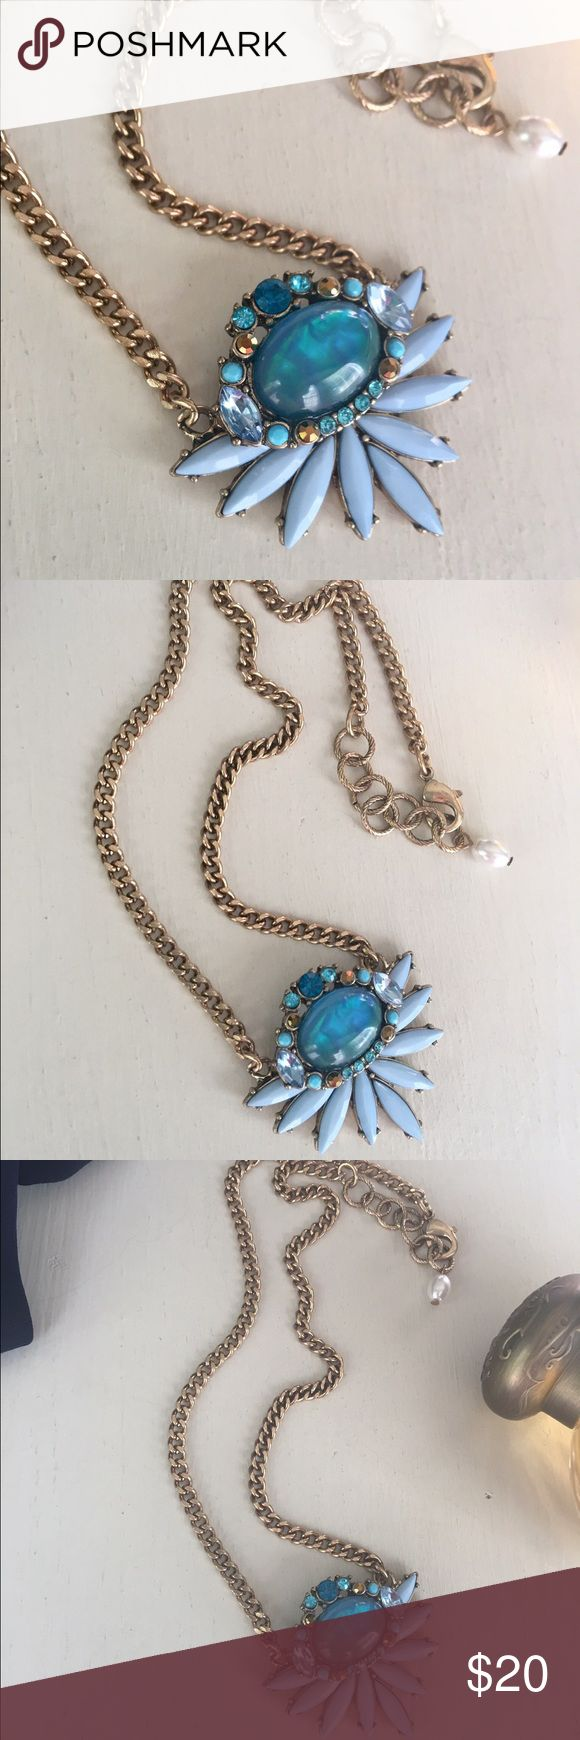 ✨🆕{The Chloe} Blue Blossom + Brass Necklace ✨🆕{The Chloe} Blue Blossom + Brass Necklace✨Striking iridescent blue glass centerpiece✨Milky blue gem petals✨Brilliant blue hued gems✨Brass chain✨Pearl on clasp✨ 🎁Now accepting offers on bundles! Jewelry Necklaces